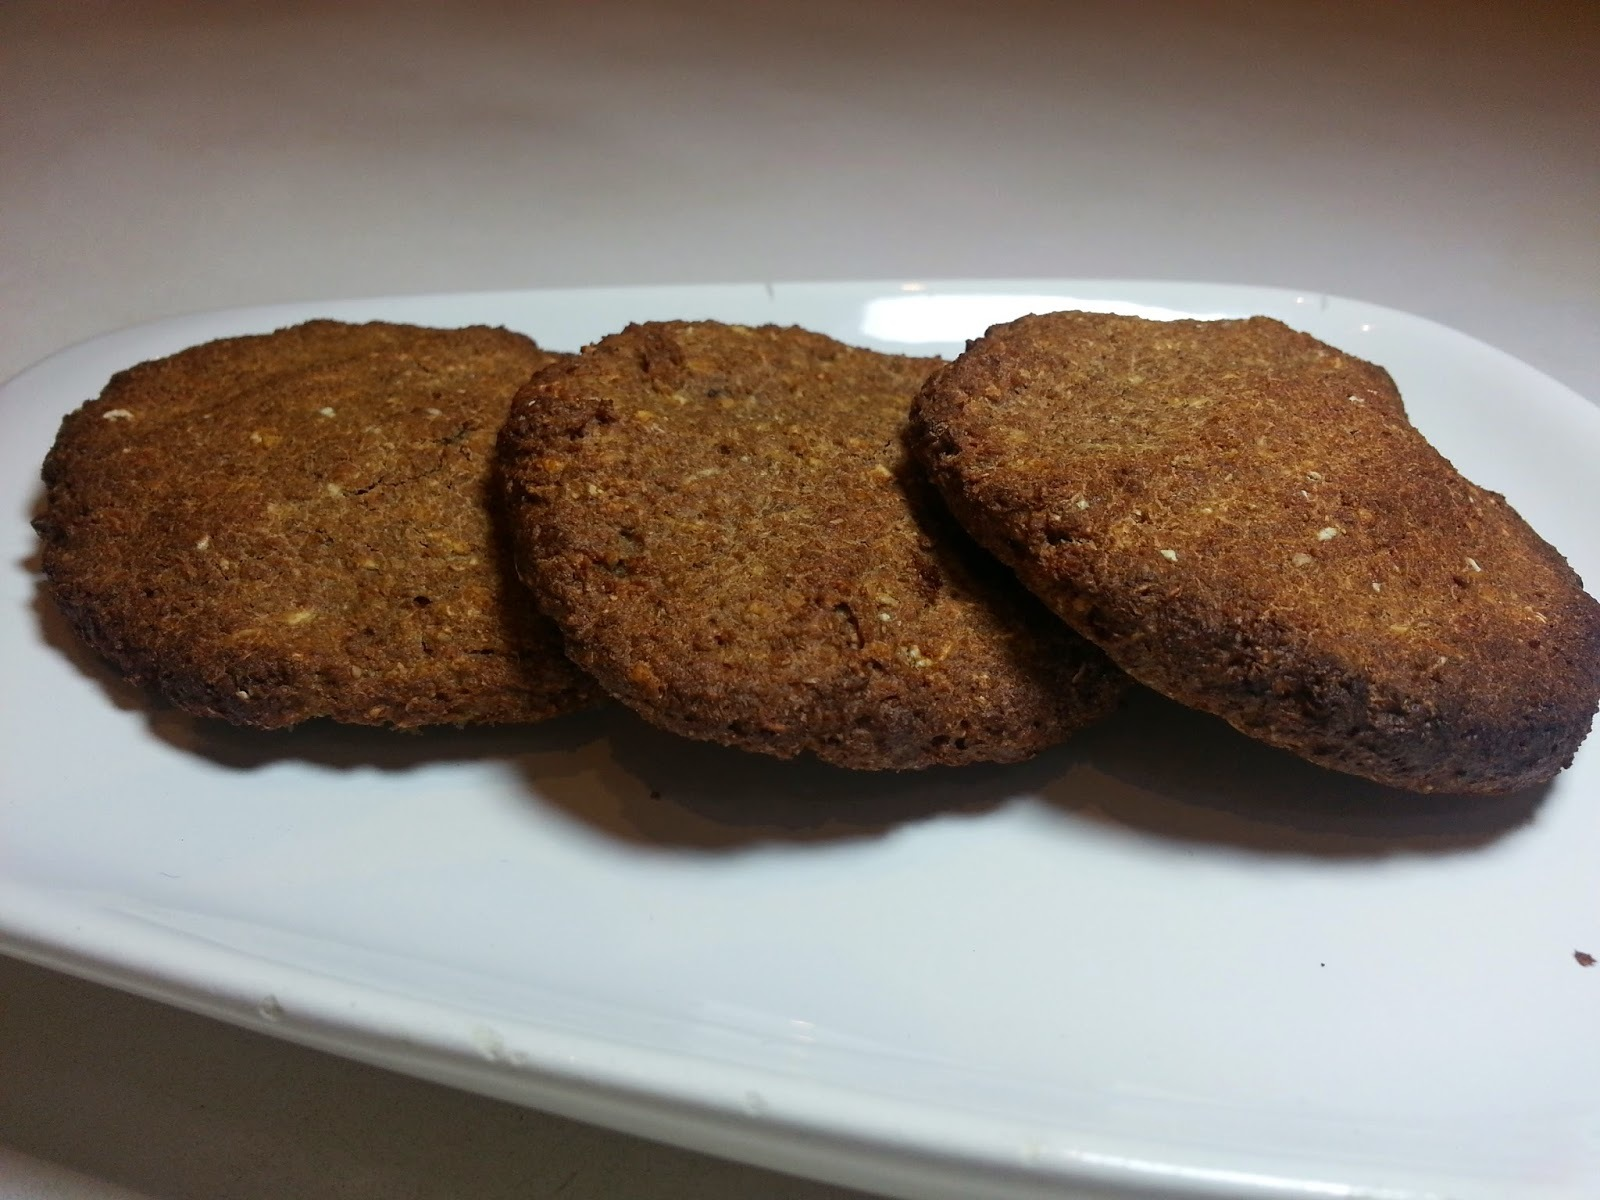 Galletas de salvado de trigo